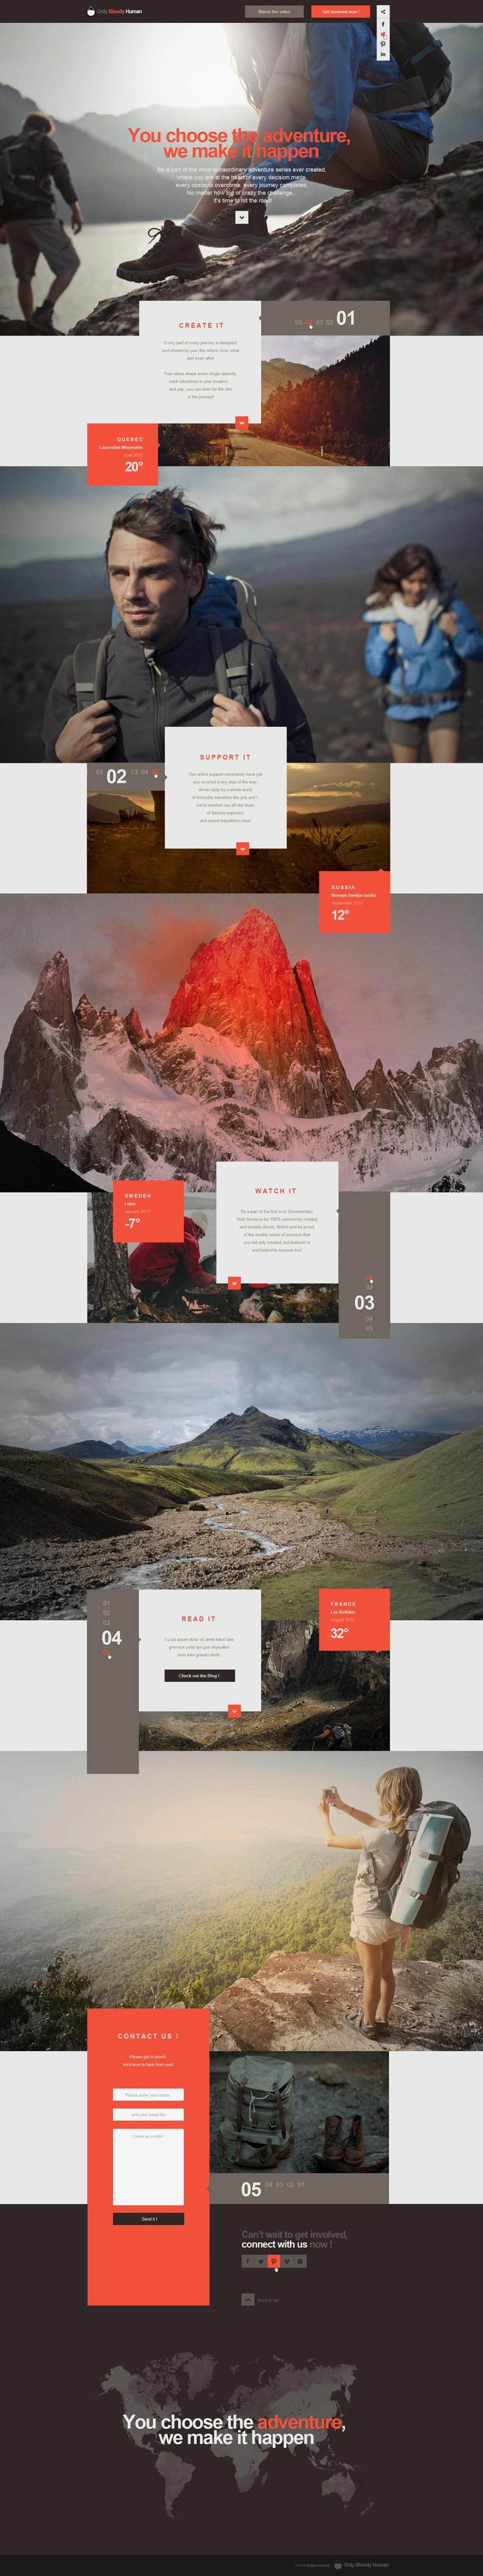 Web | OBH Landing Page Concept on Behance